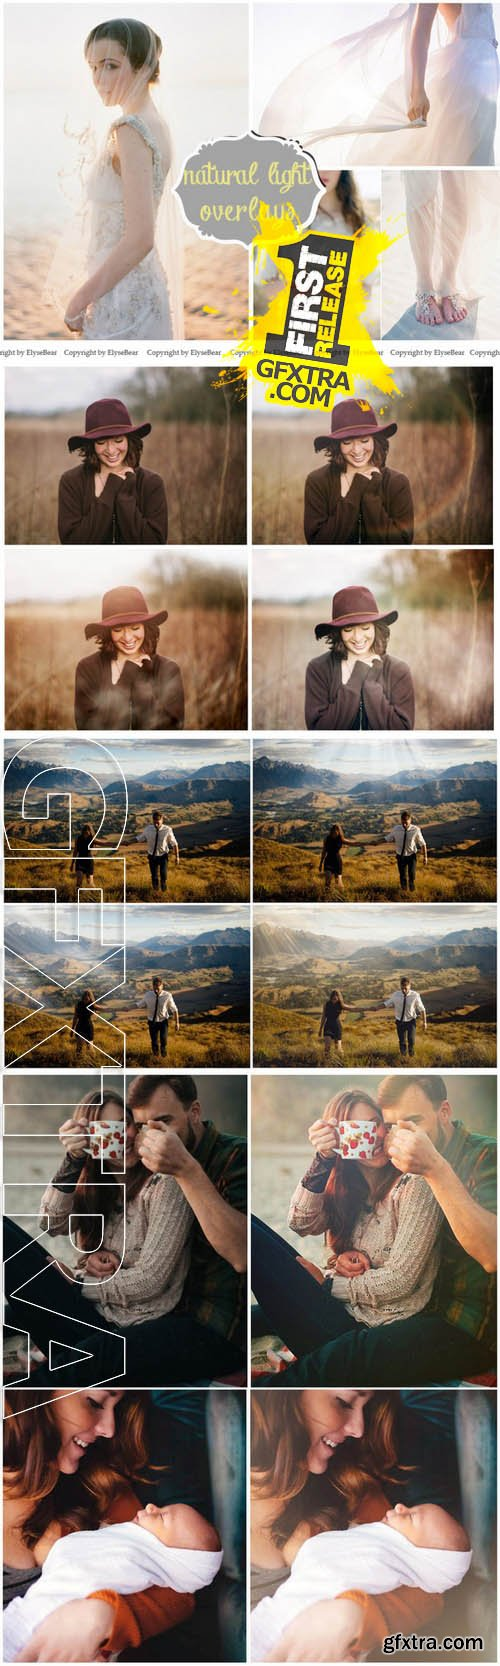 30 Natural Light Photo Overlays JPG - Creativemarket 130135